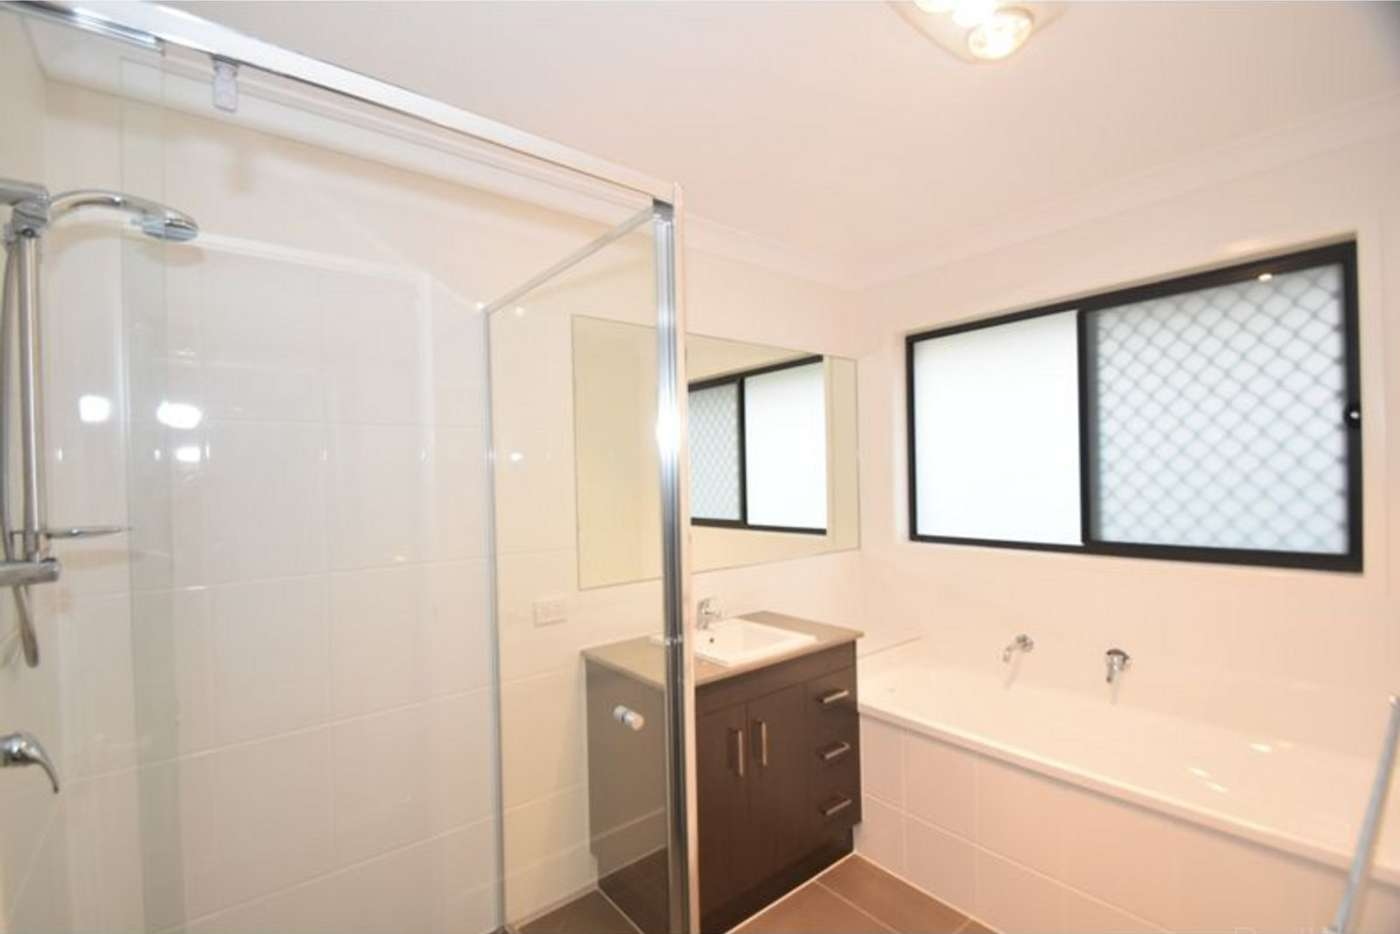 Seventh view of Homely house listing, 4 Menton Place, Harristown QLD 4350